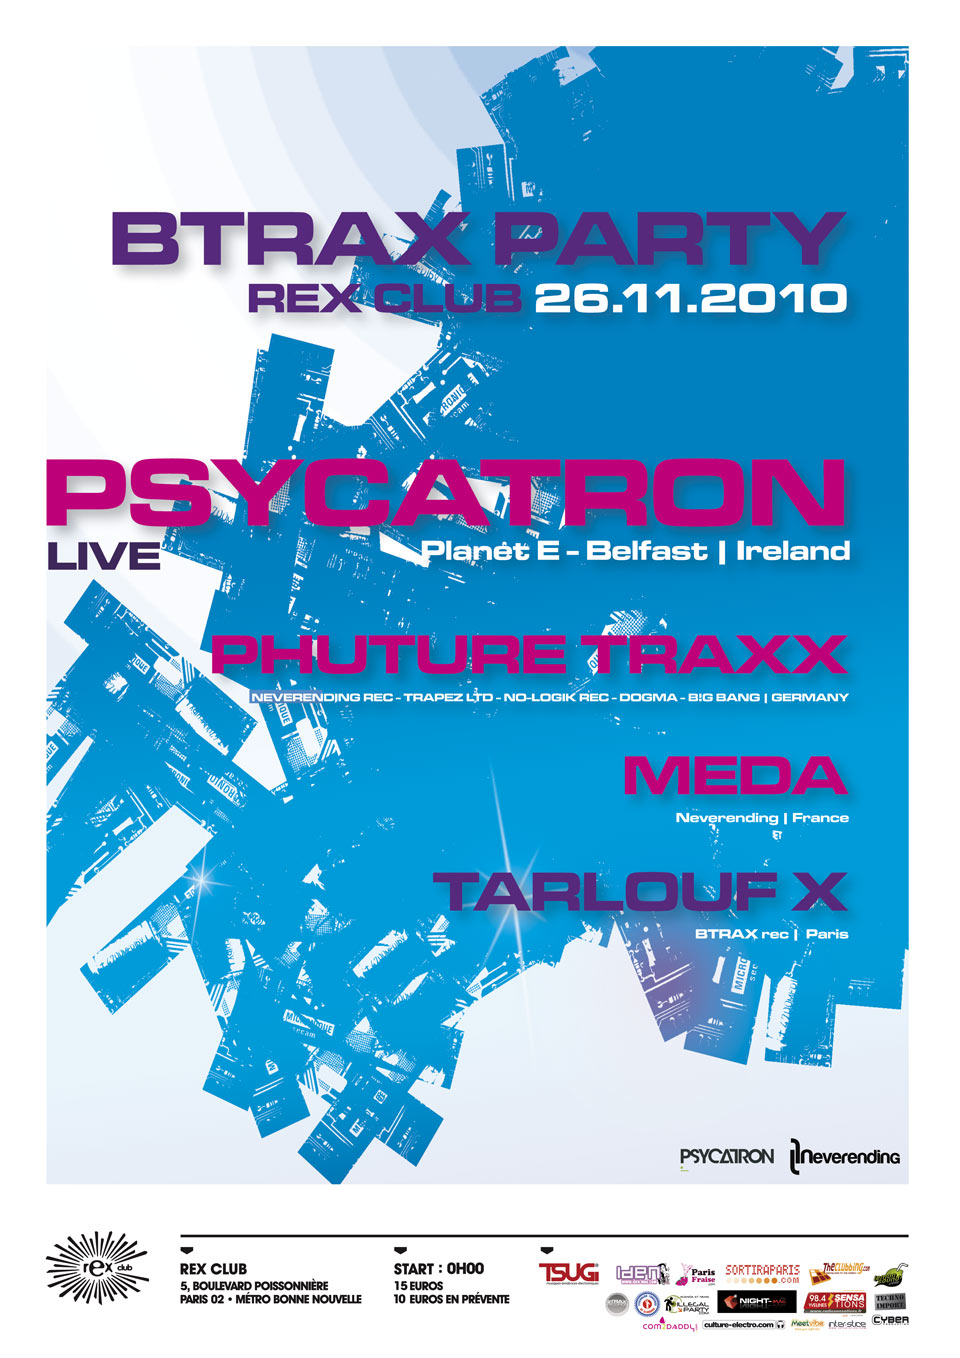 BTRAX party 26.11.10